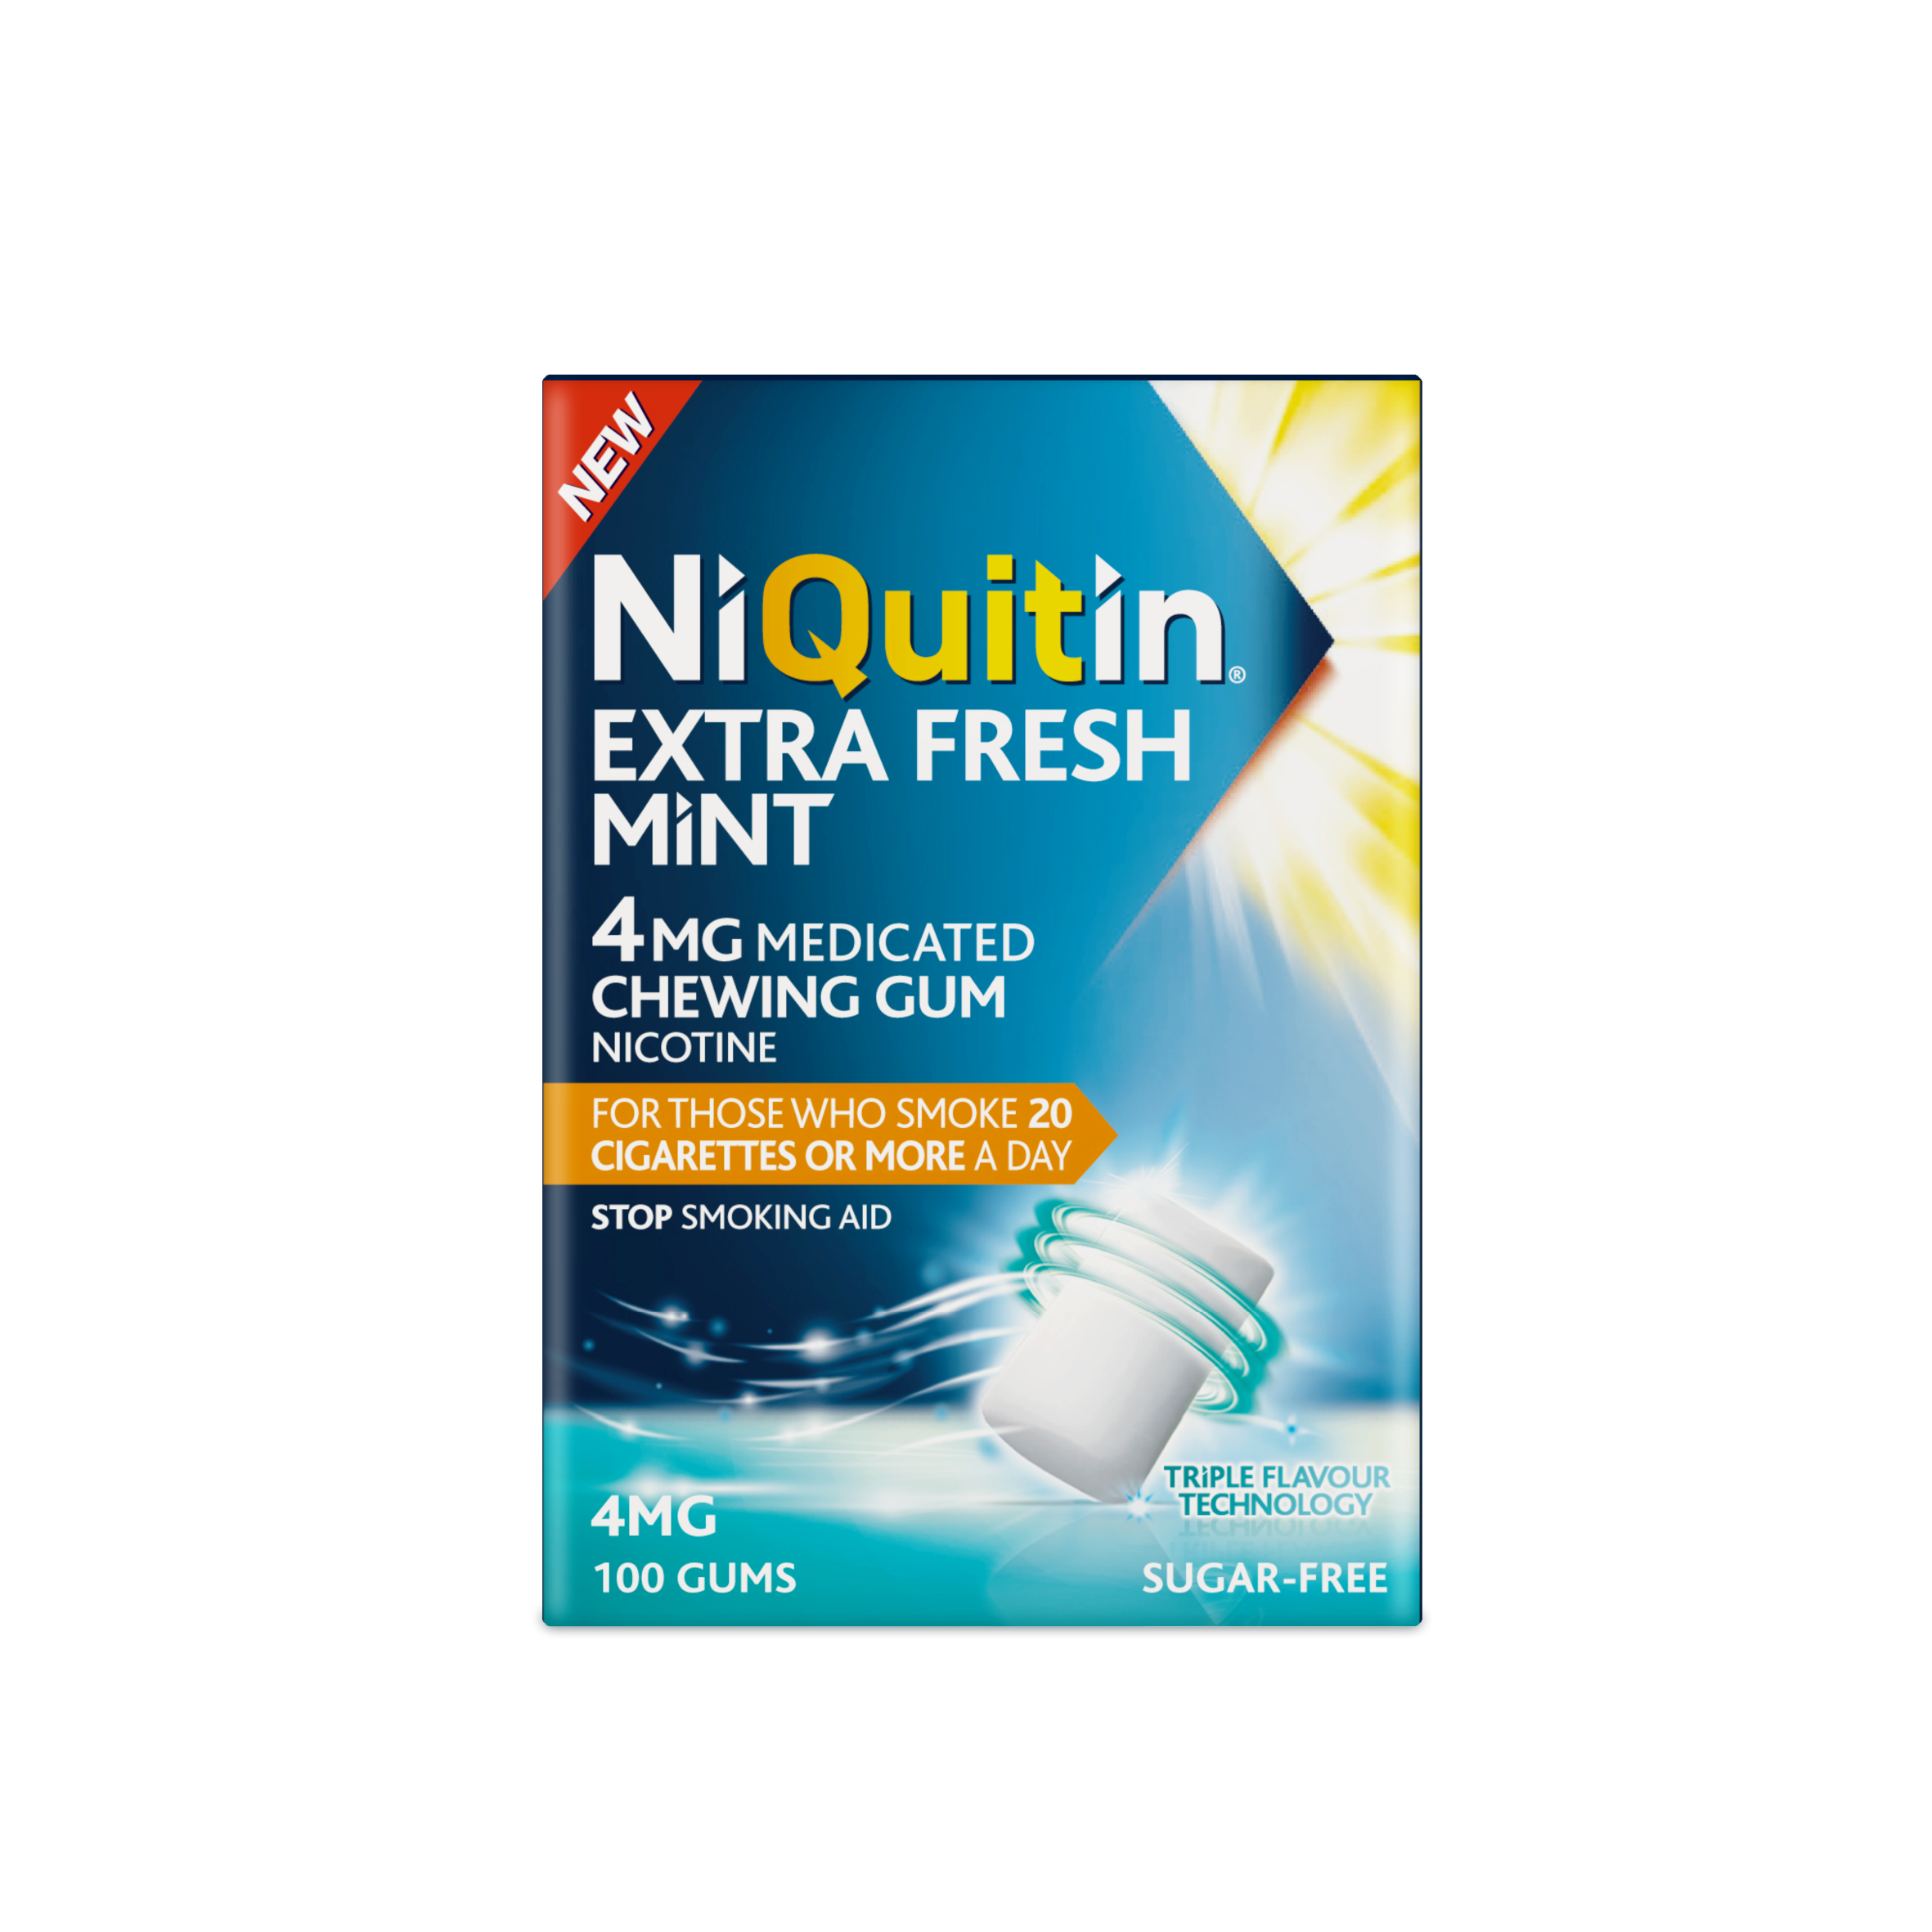 NiQuitin Extra Fresh Mint 4mg Medicated Chewing Gum